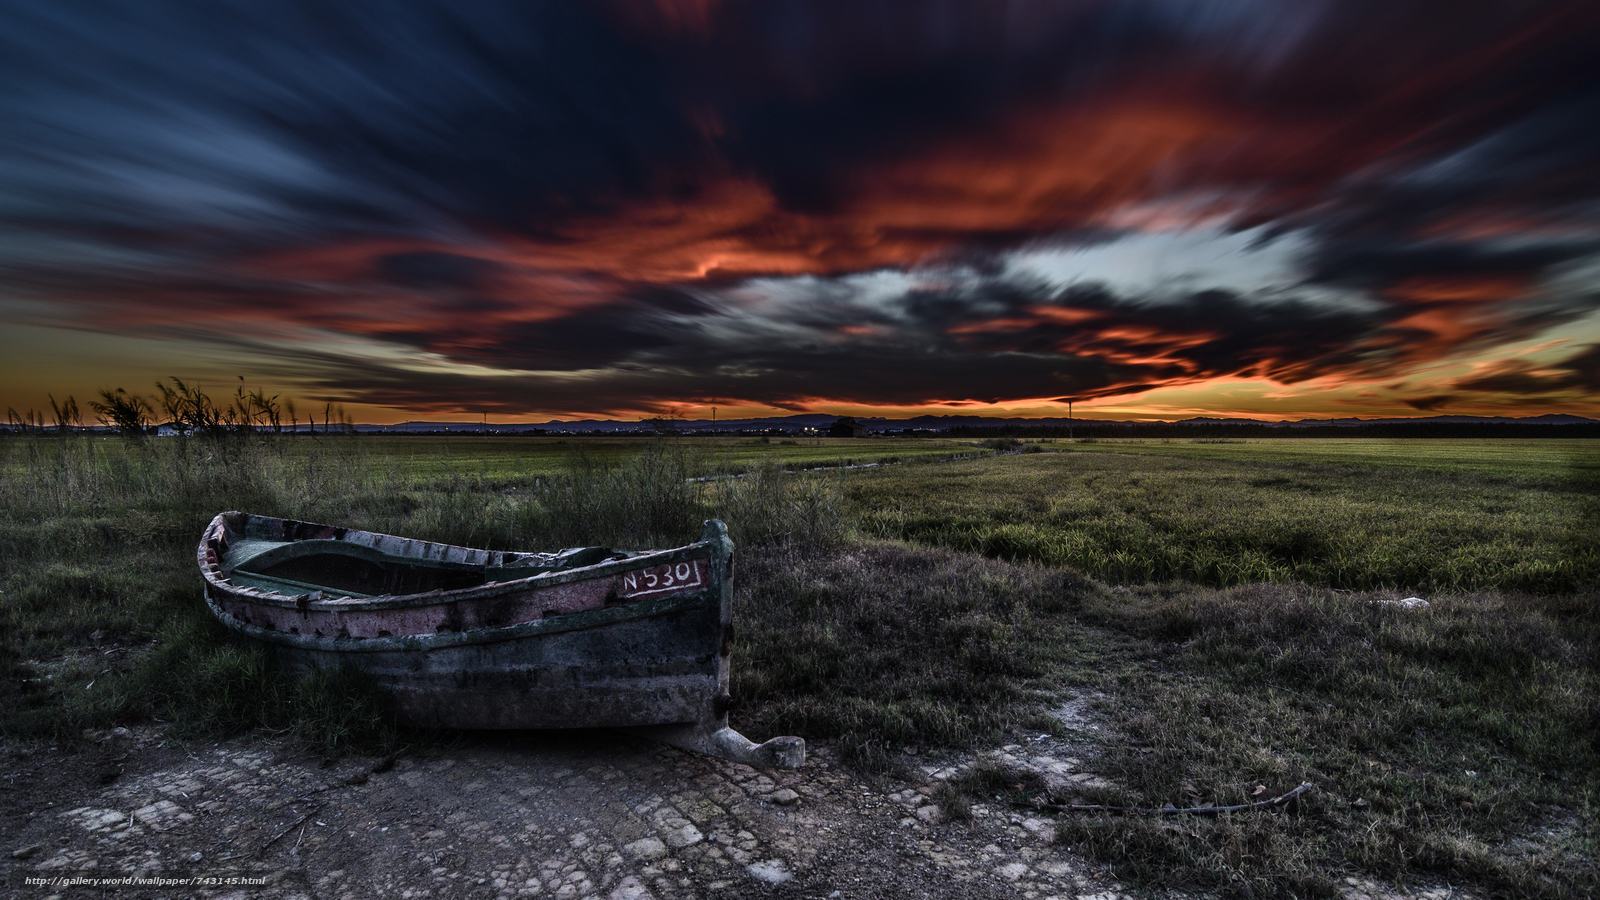 a boat, boats, landscape, nature, sunset, Coast, clouds, sky, gloomily, grass, storm, clouds, night